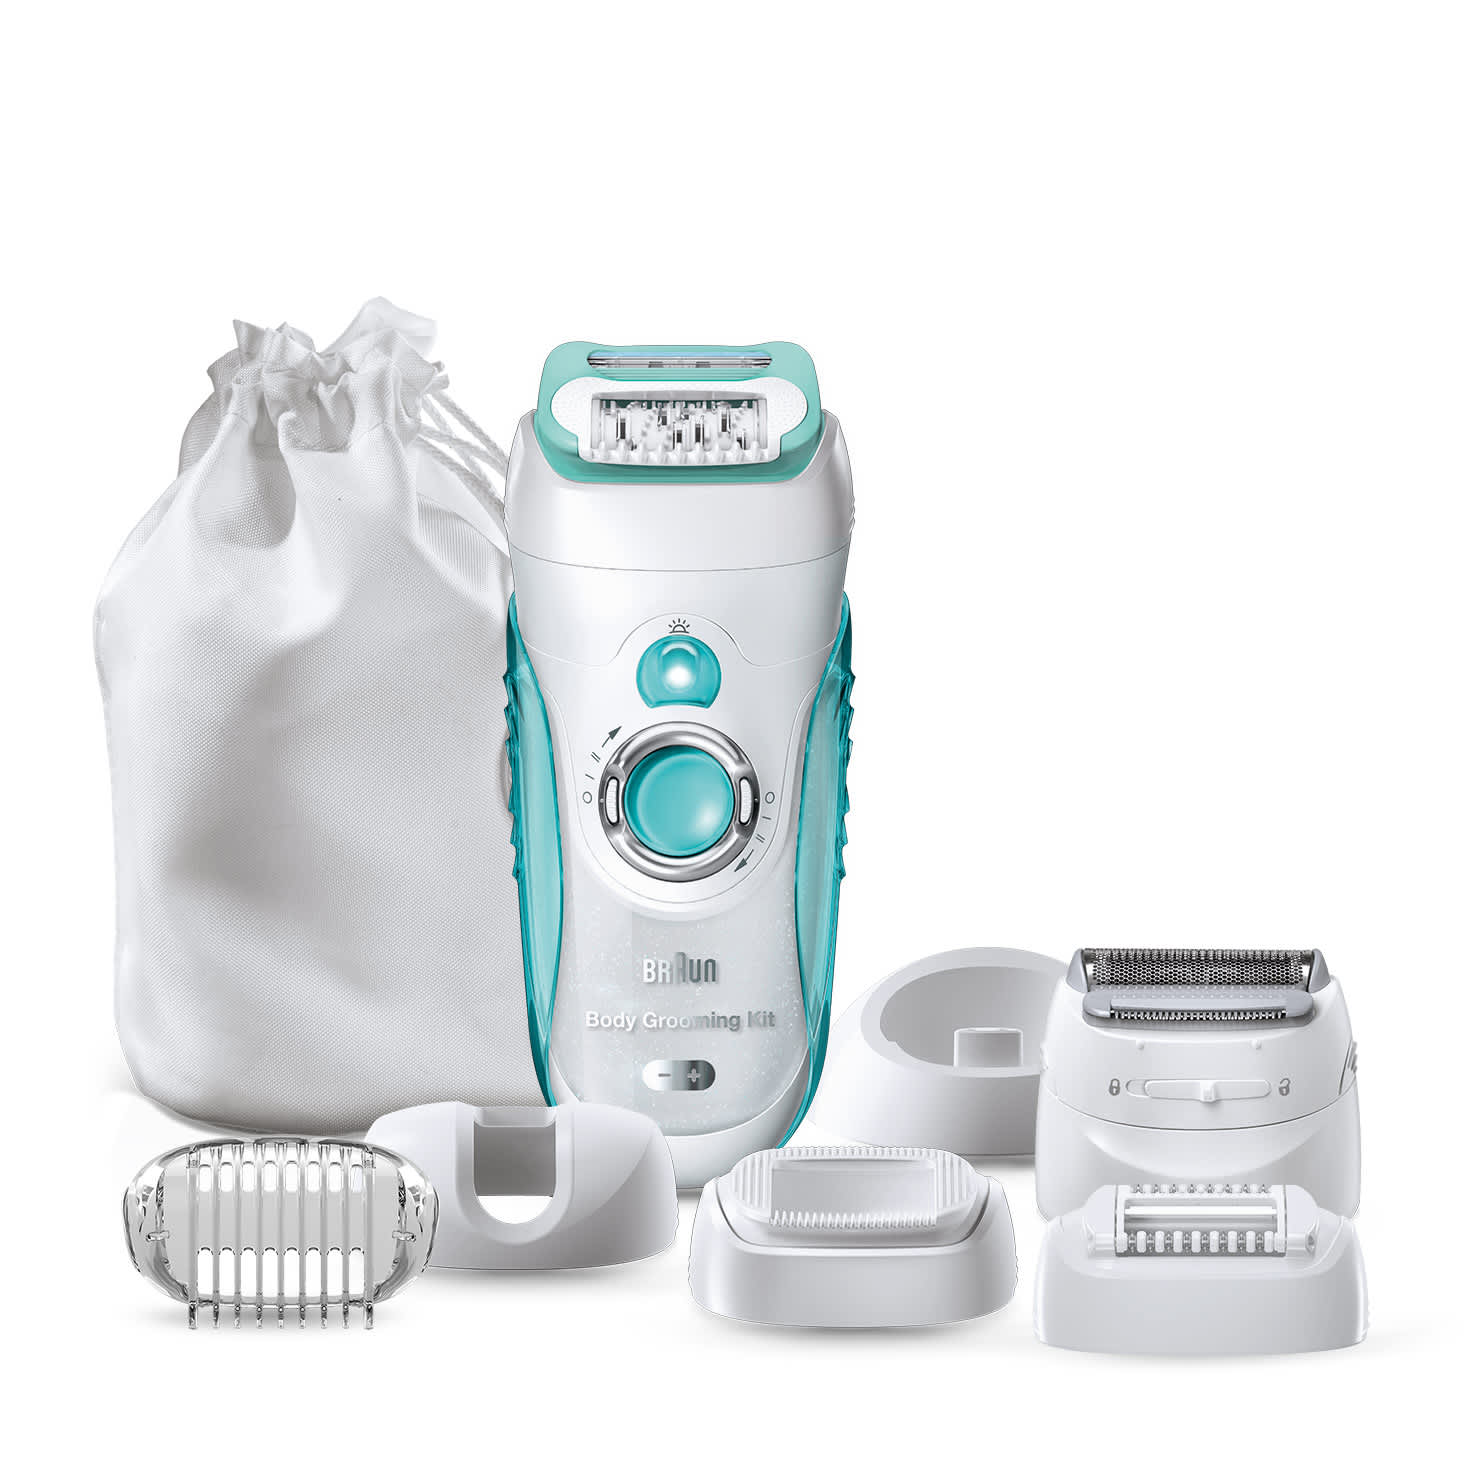 Braun Body-grooming kit BGK7090